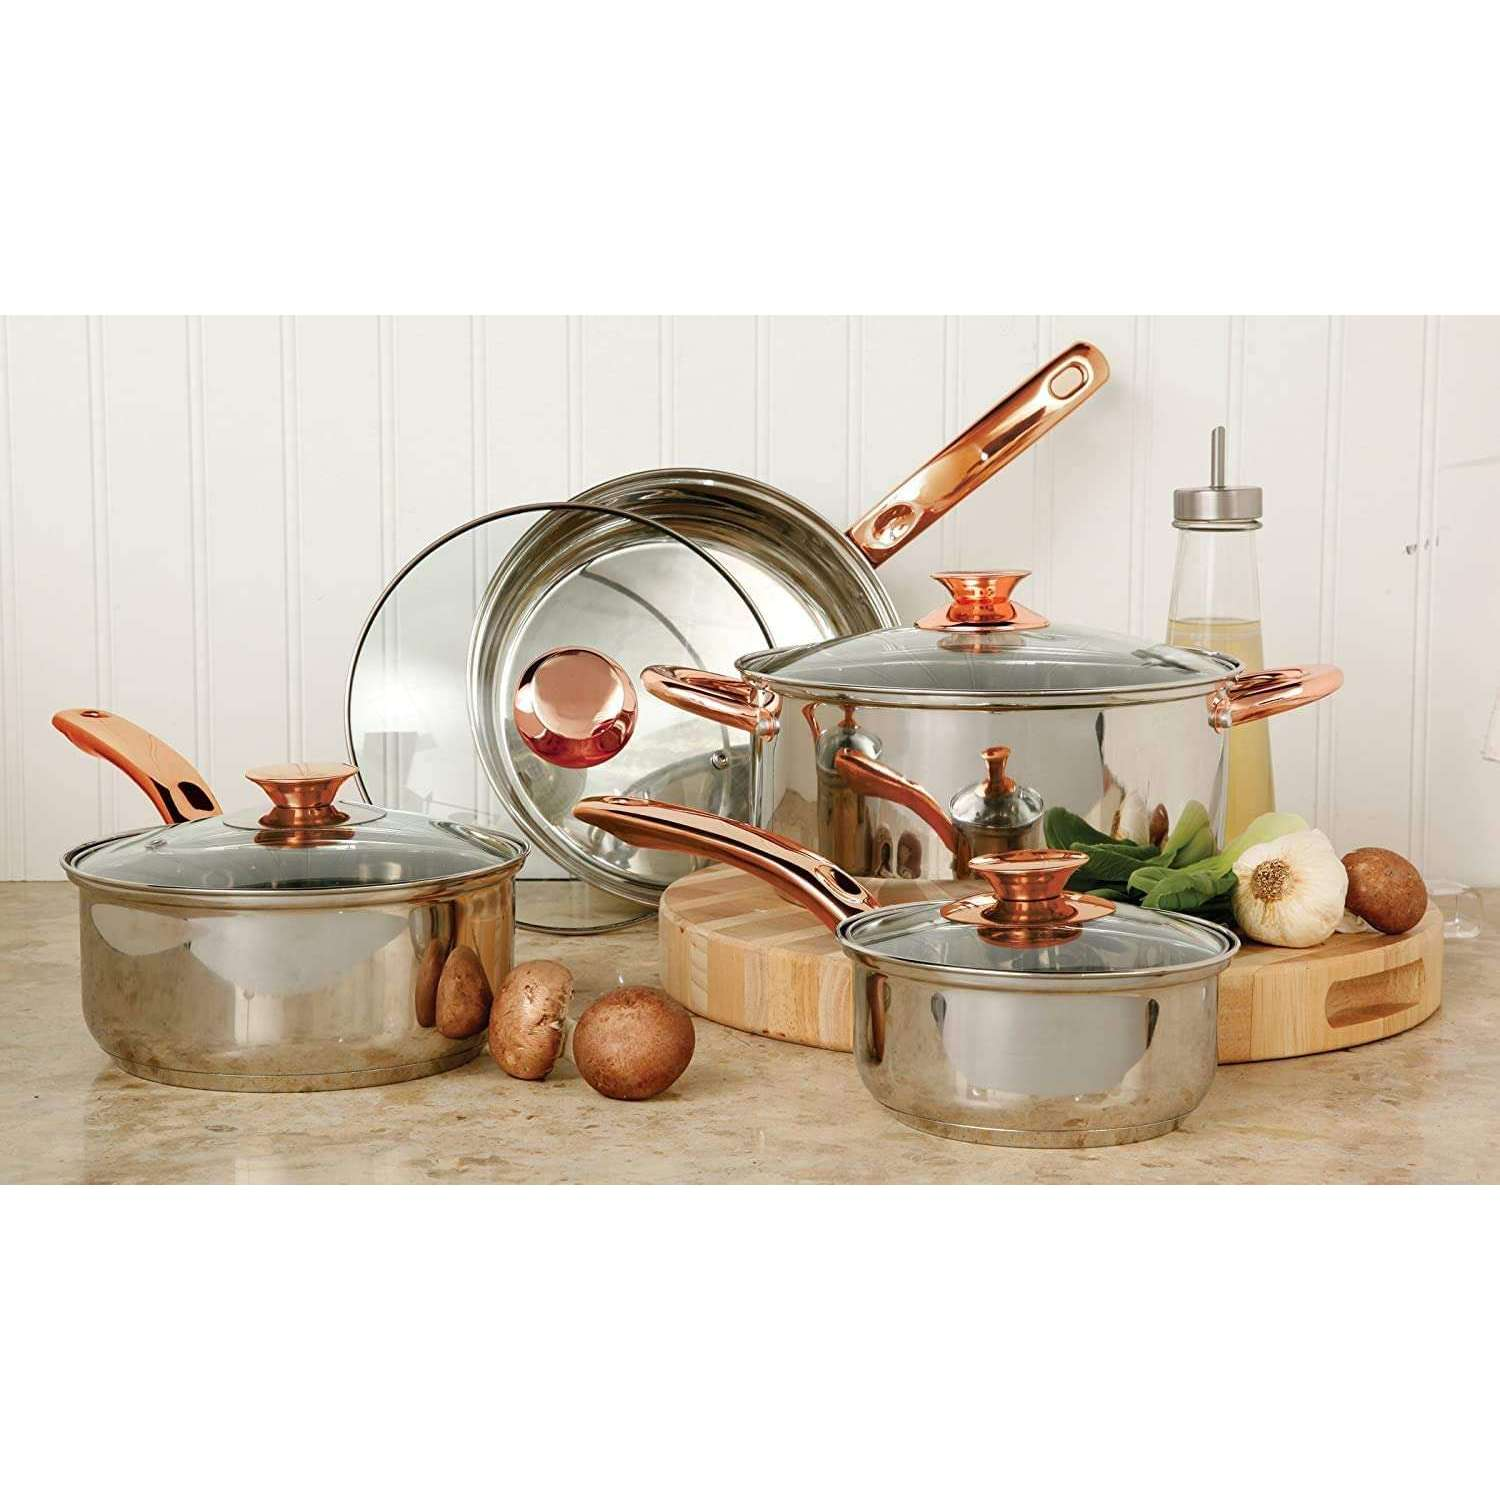 Sunbeam Ansonville 8-Piece Cookware Set, Silver/Brass